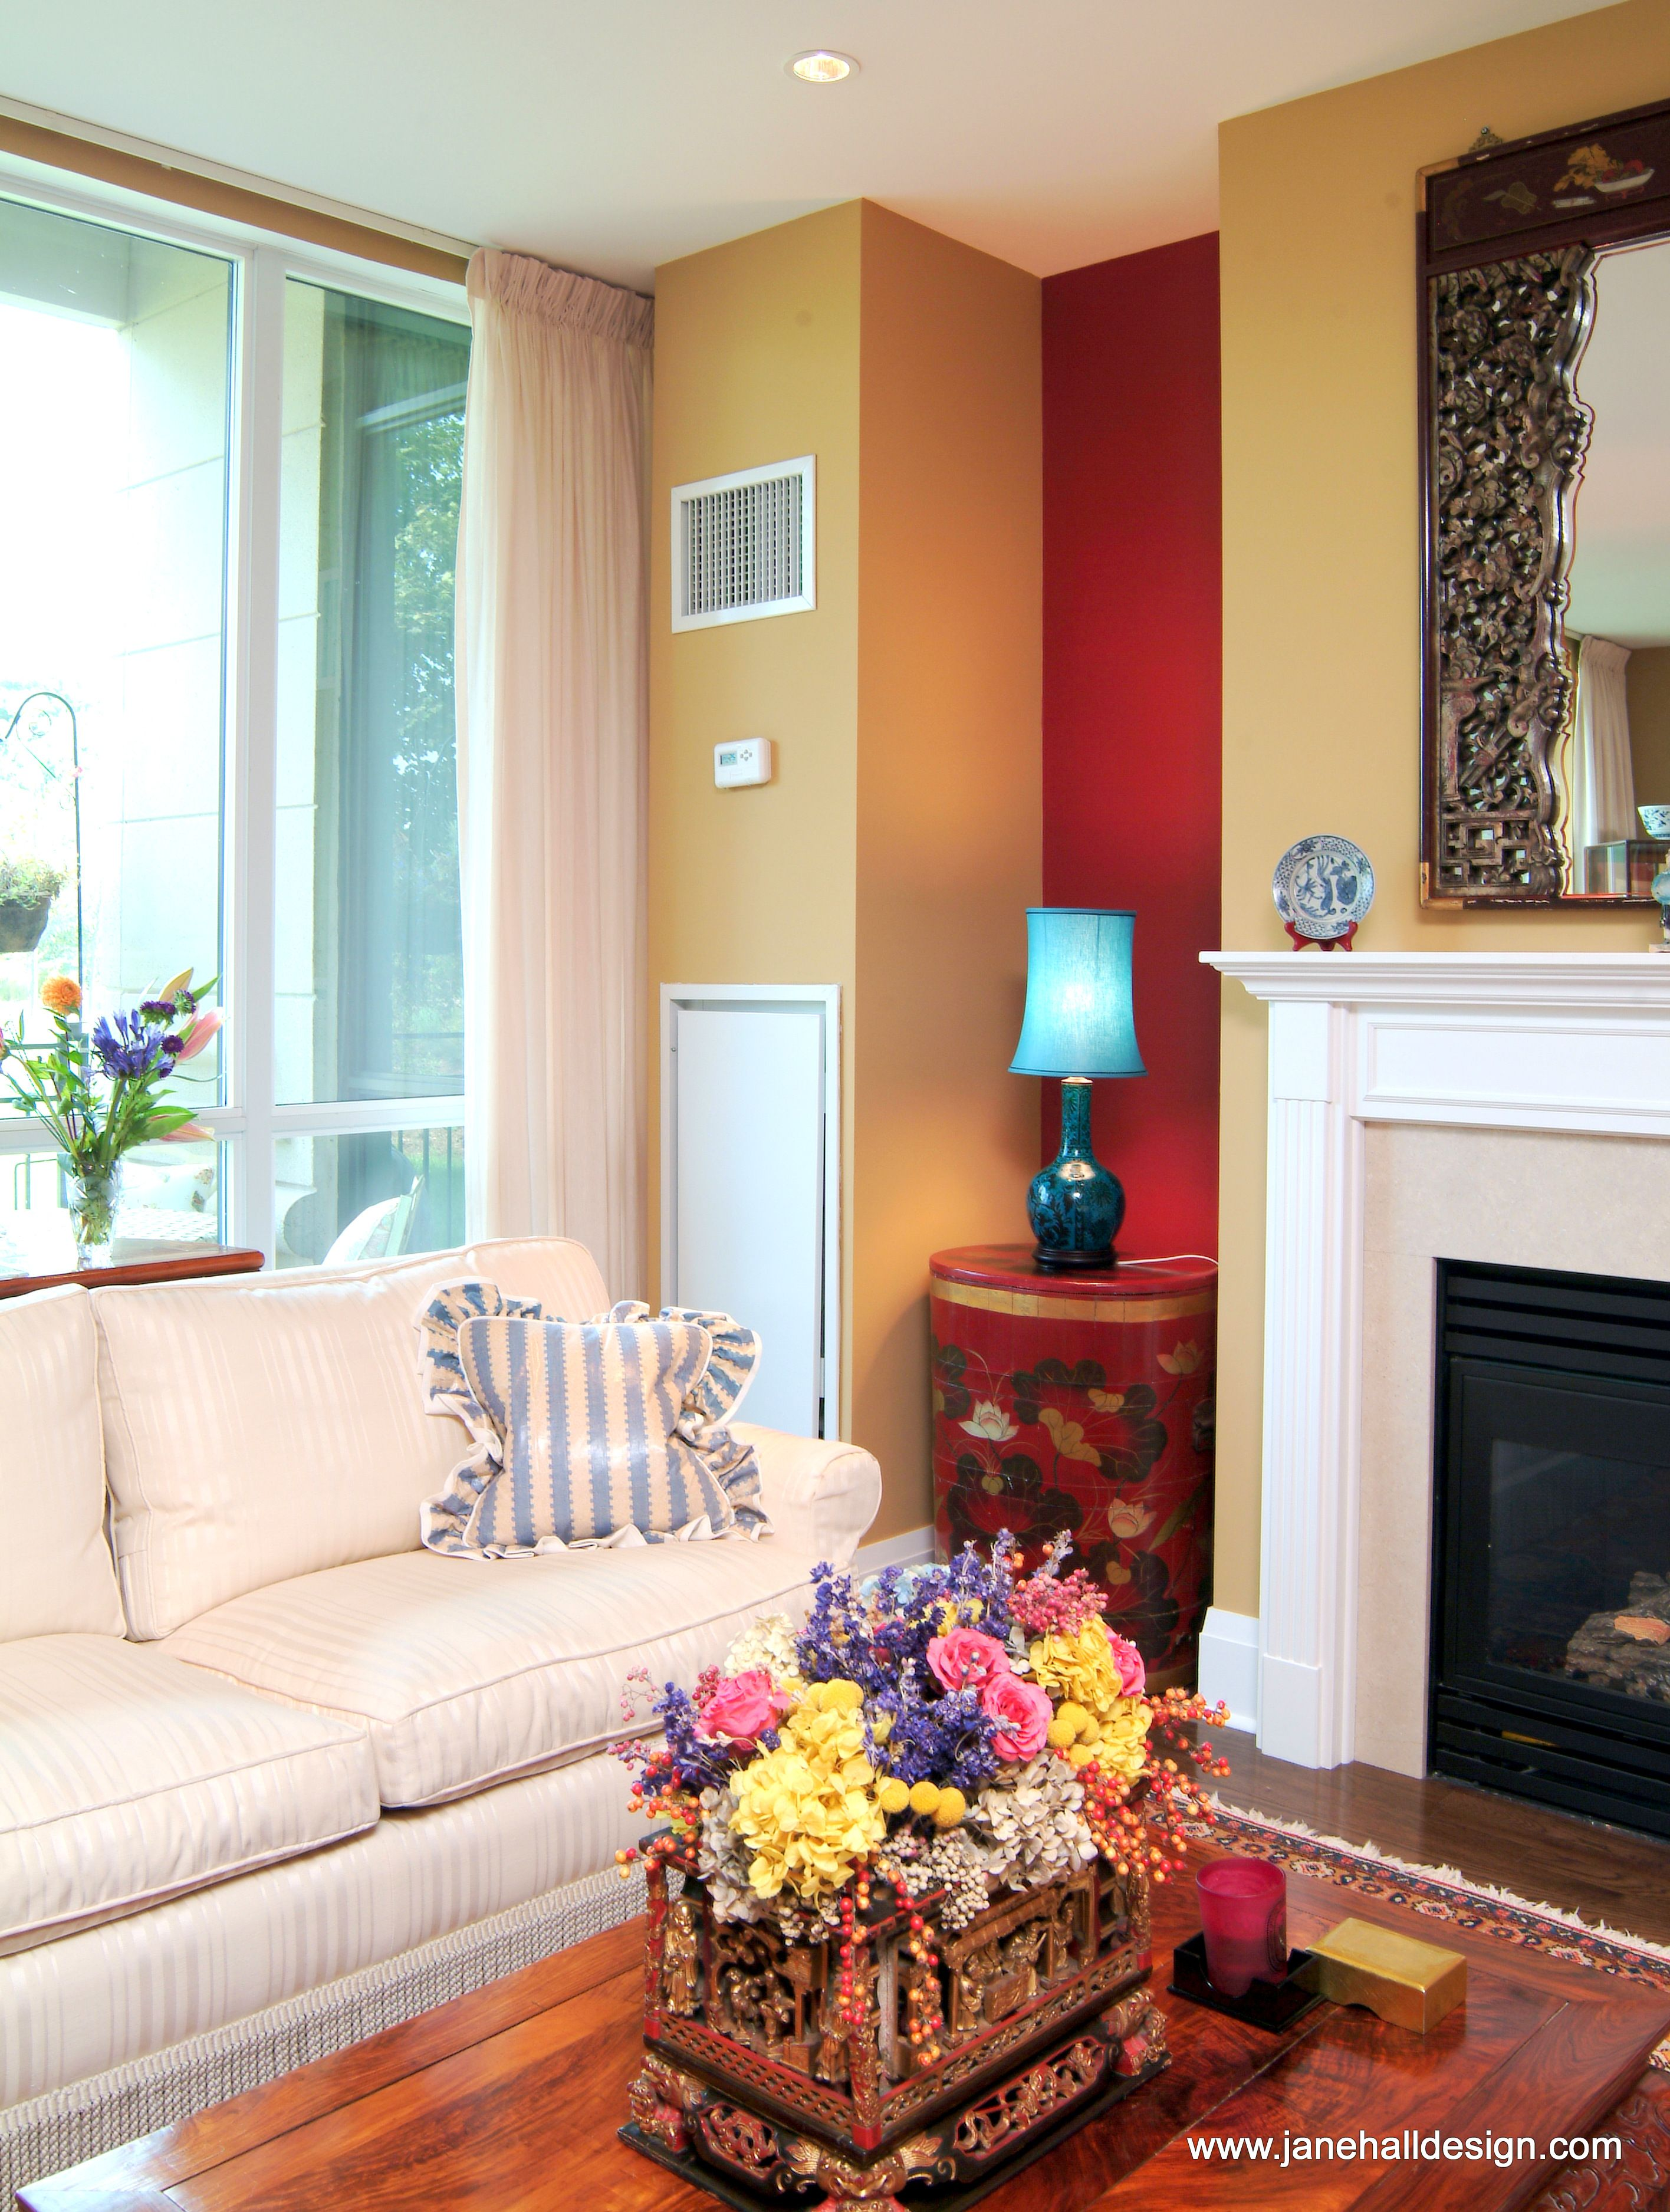 Jane Hall interior design job Color Schemes Blaze Red From Spice